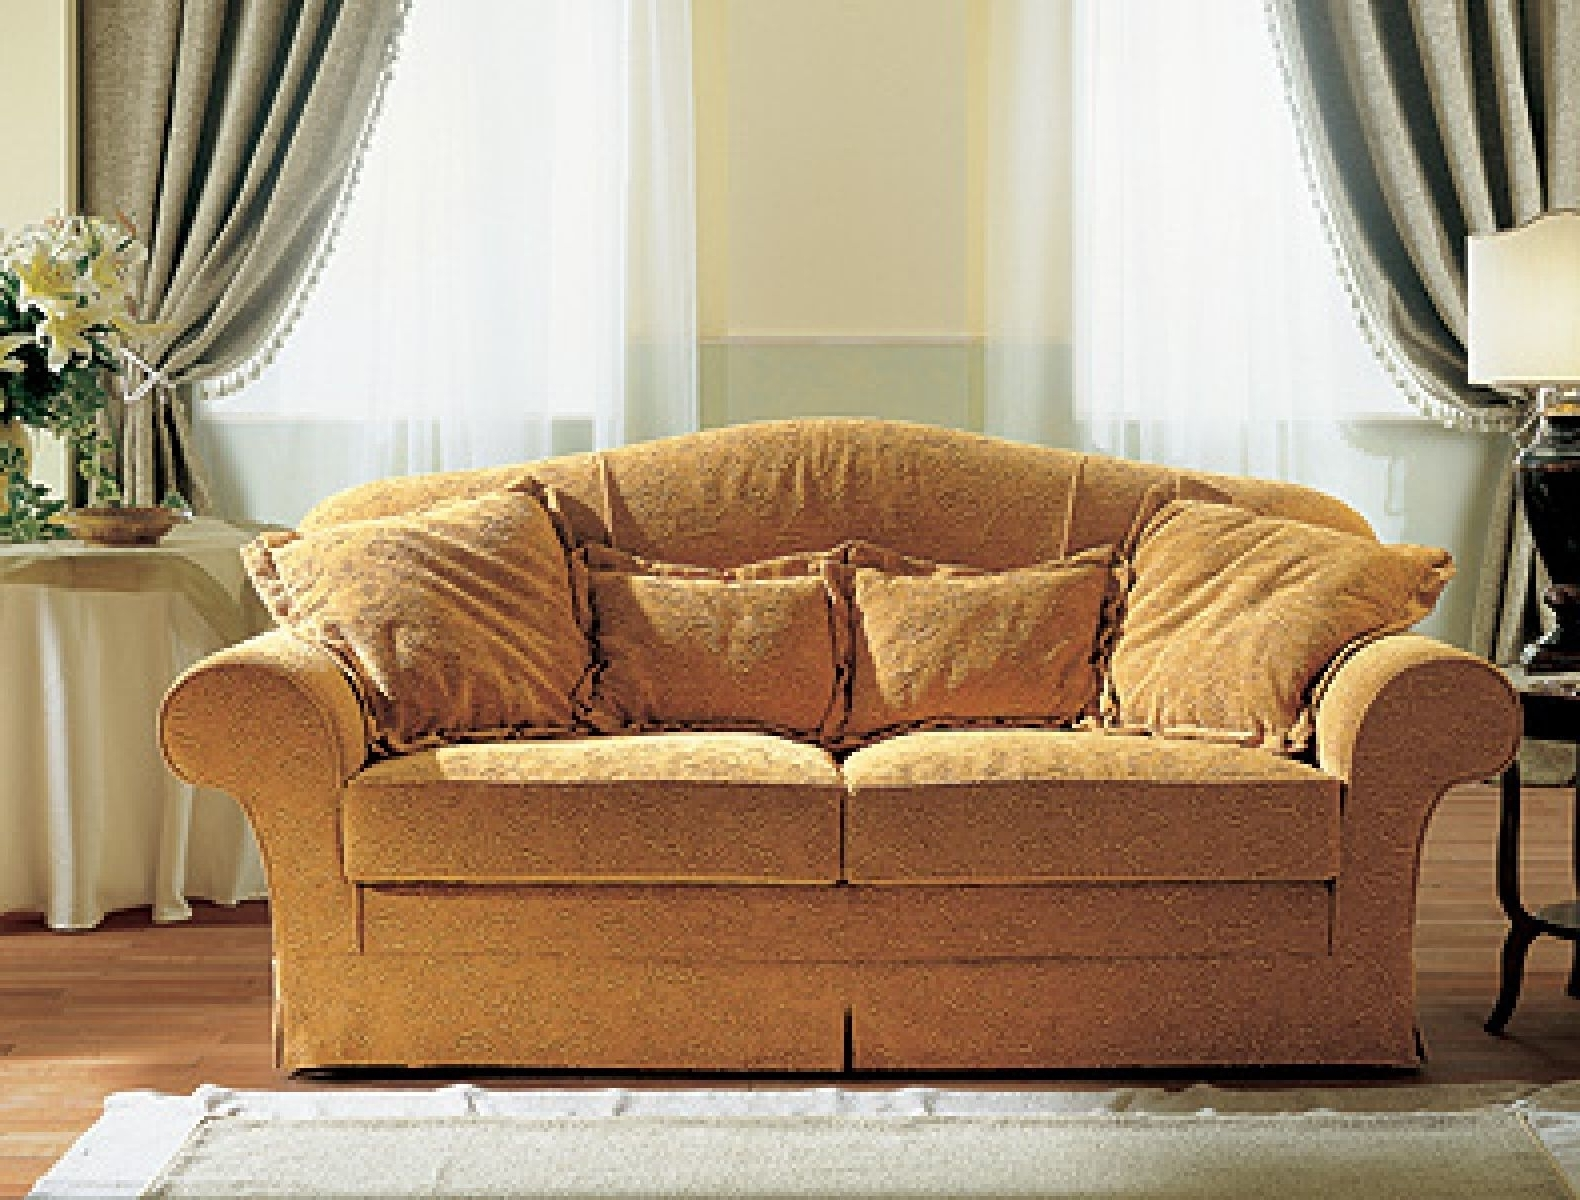 Current Elegant Traditional Sofas 70 For Your Office Sofa Ideas With With Traditional Sofas (View 9 of 15)